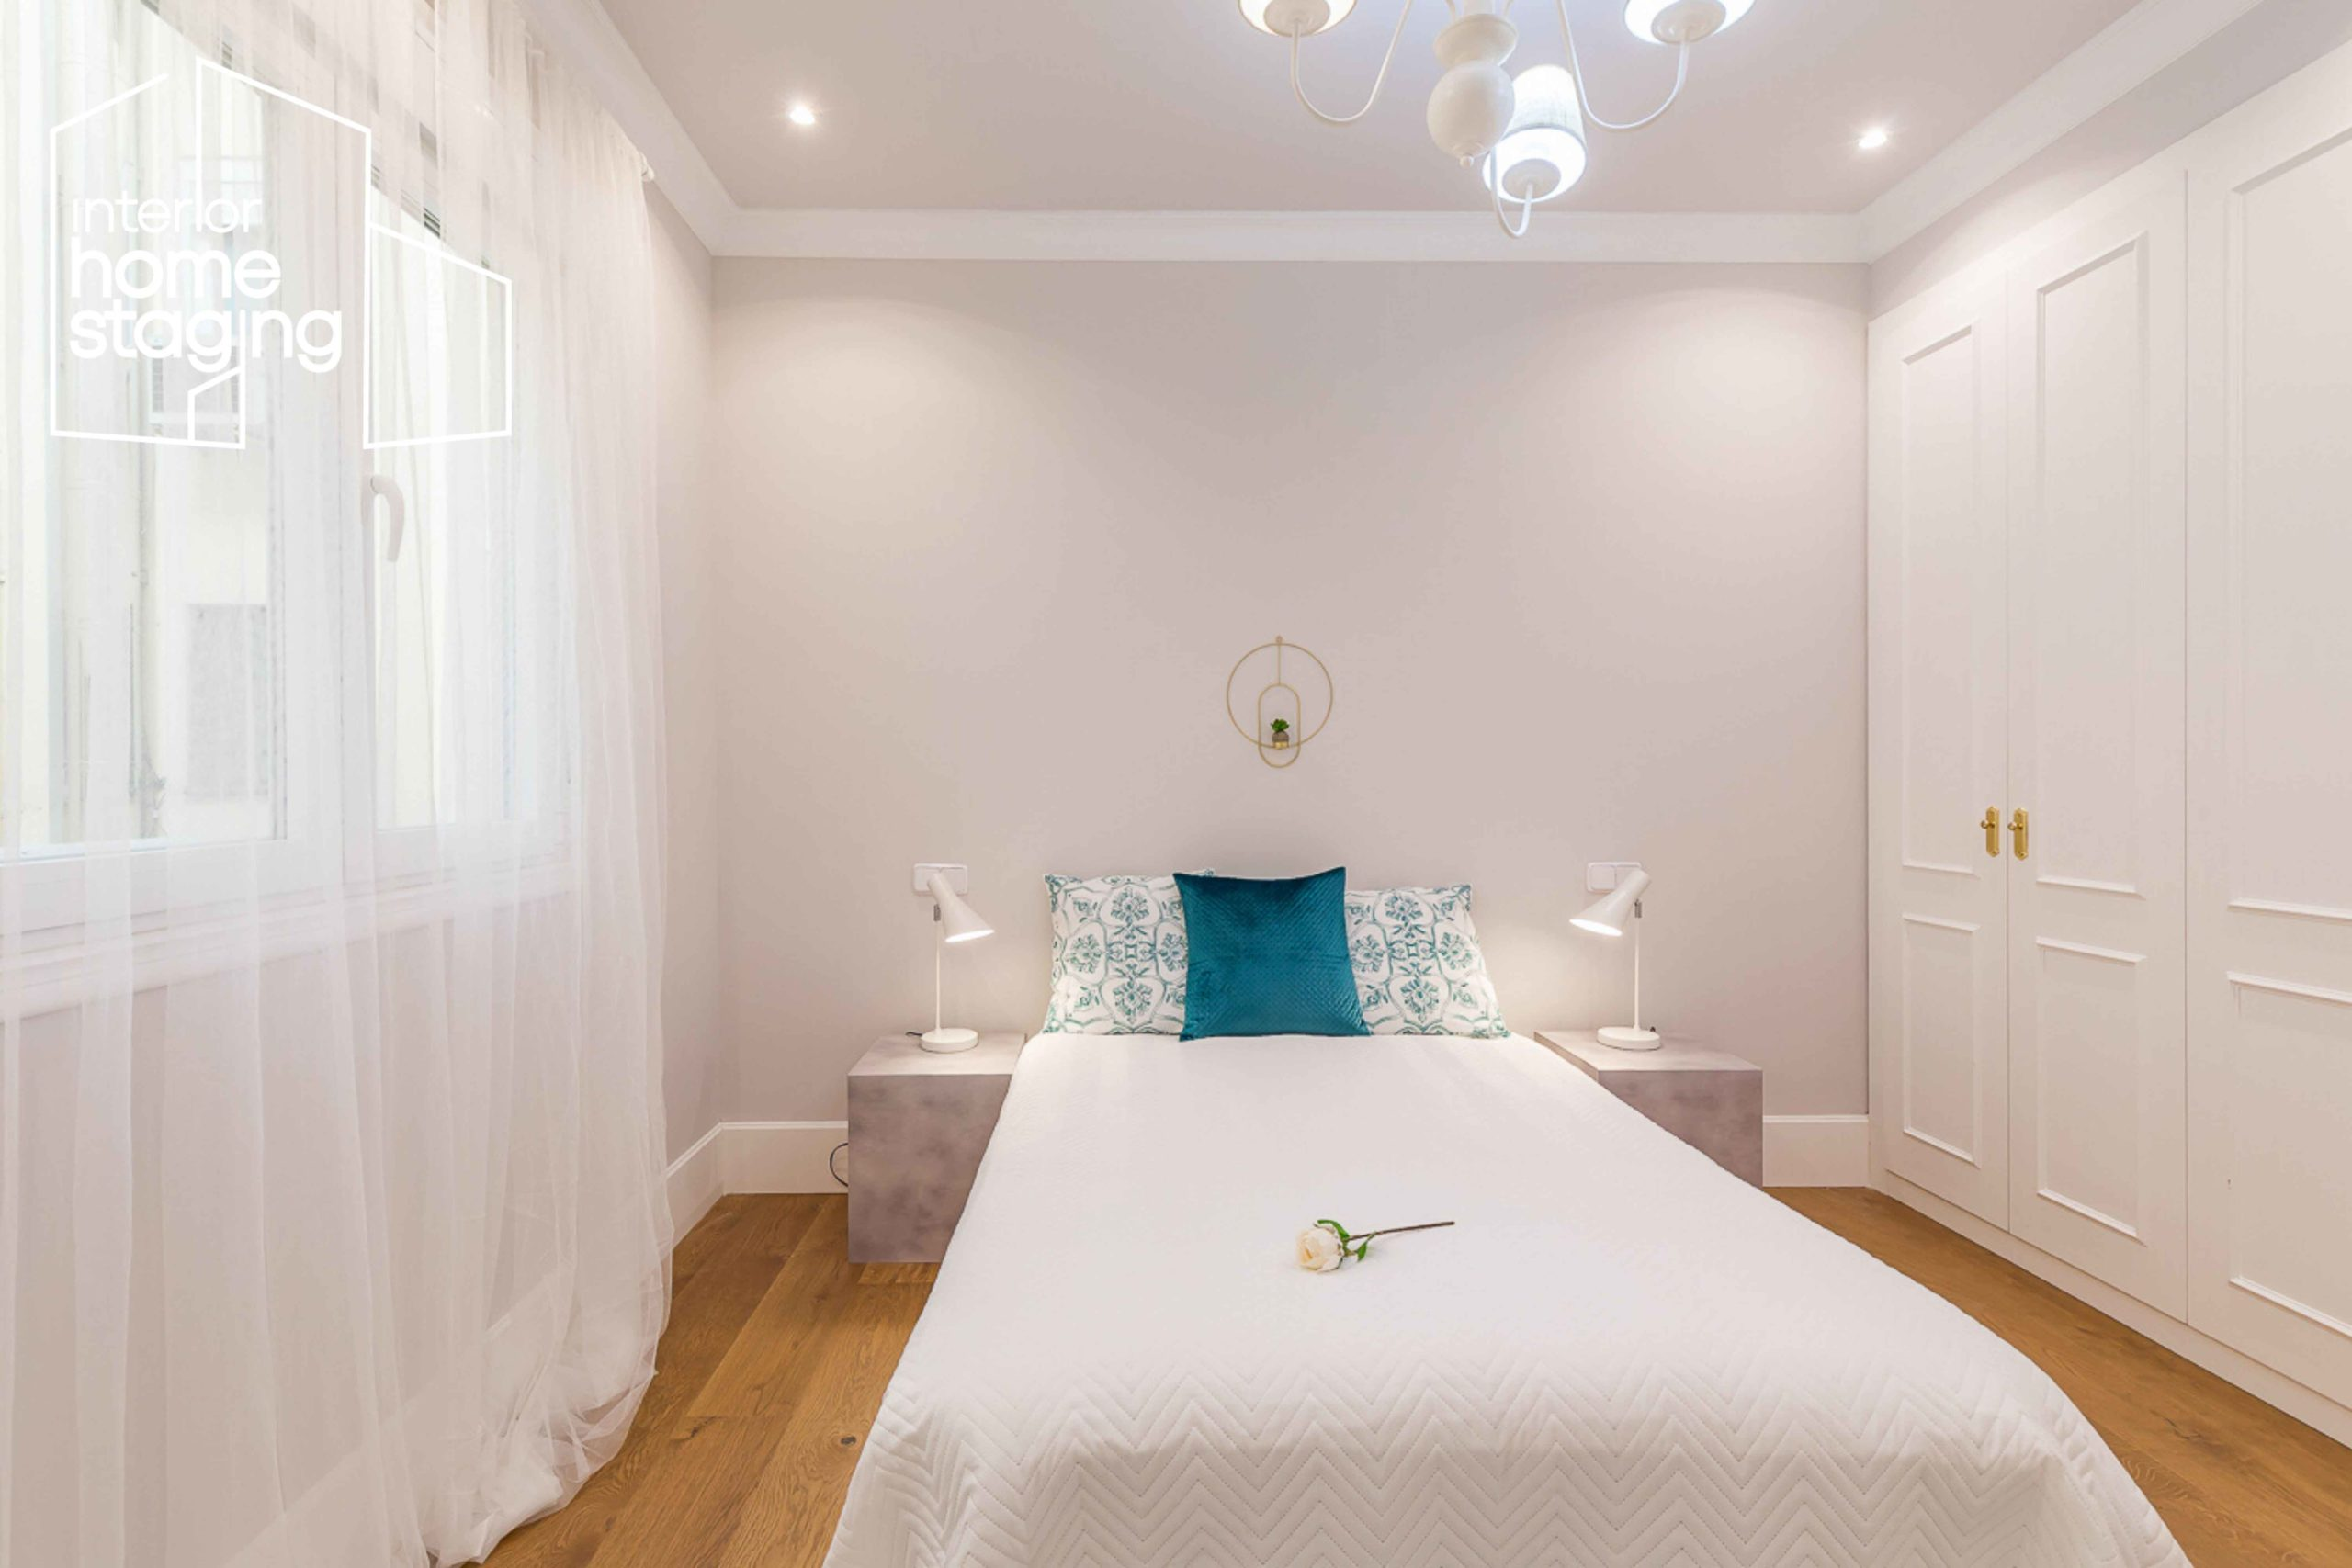 Home Staging dormitorio casa en venta Madrid